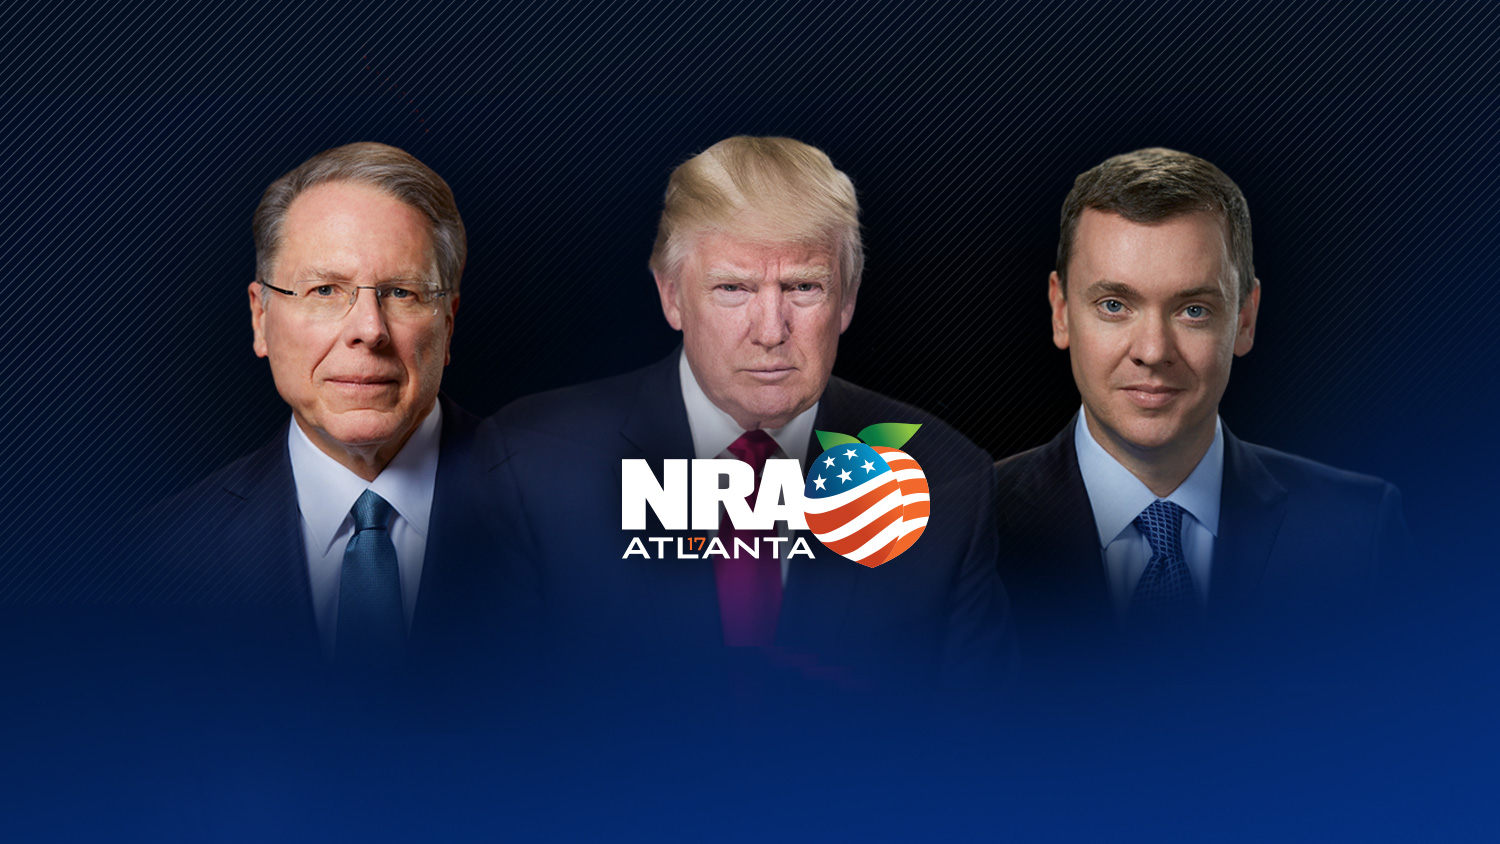 ICYMI: Wayne LaPierre, Chris W. Cox & President Donald Trump: 2017 NRA-ILA Leadership Forum